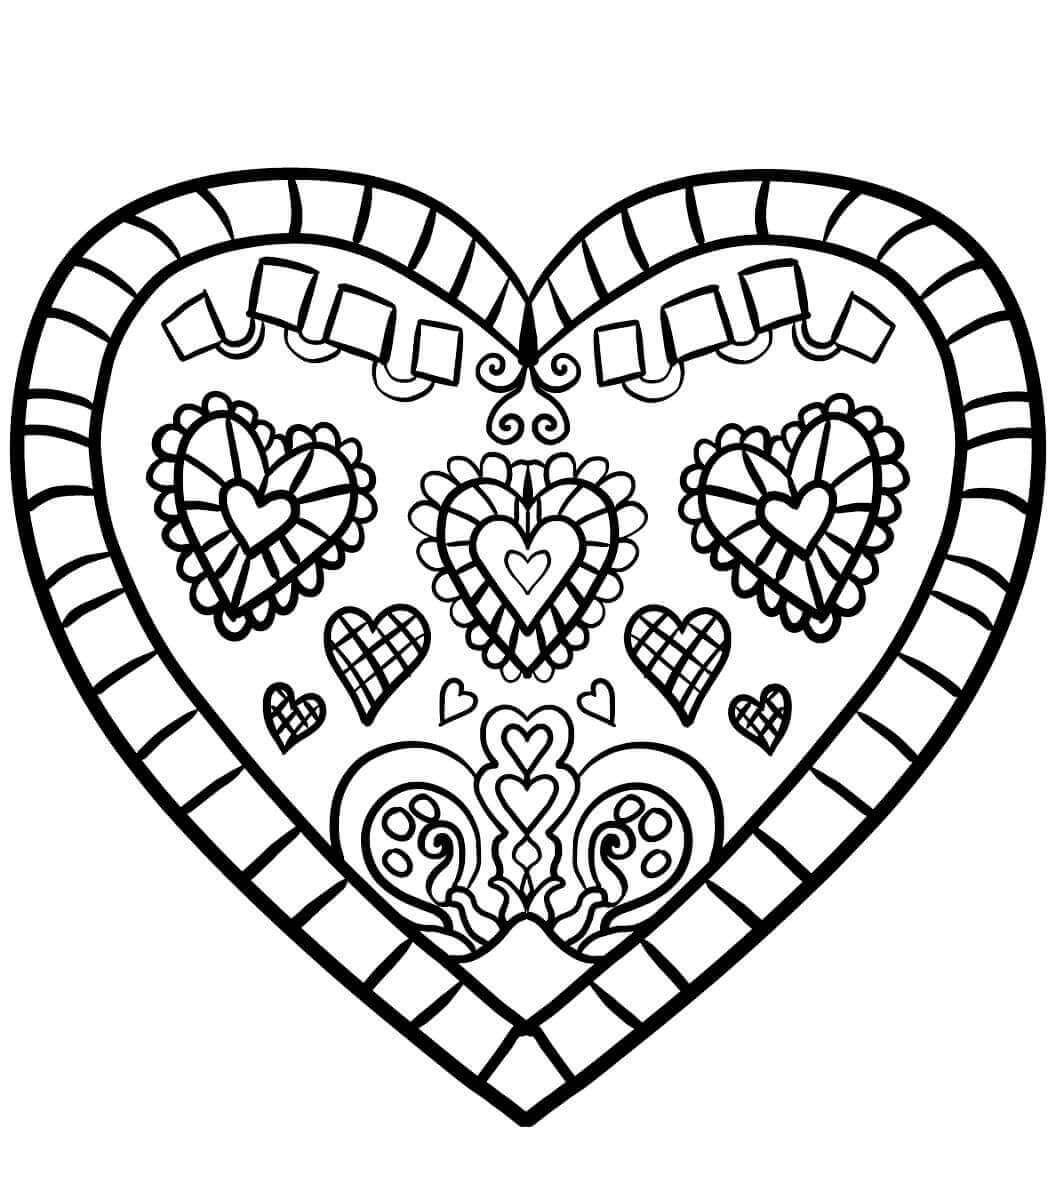 35 Free Printable Heart Coloring